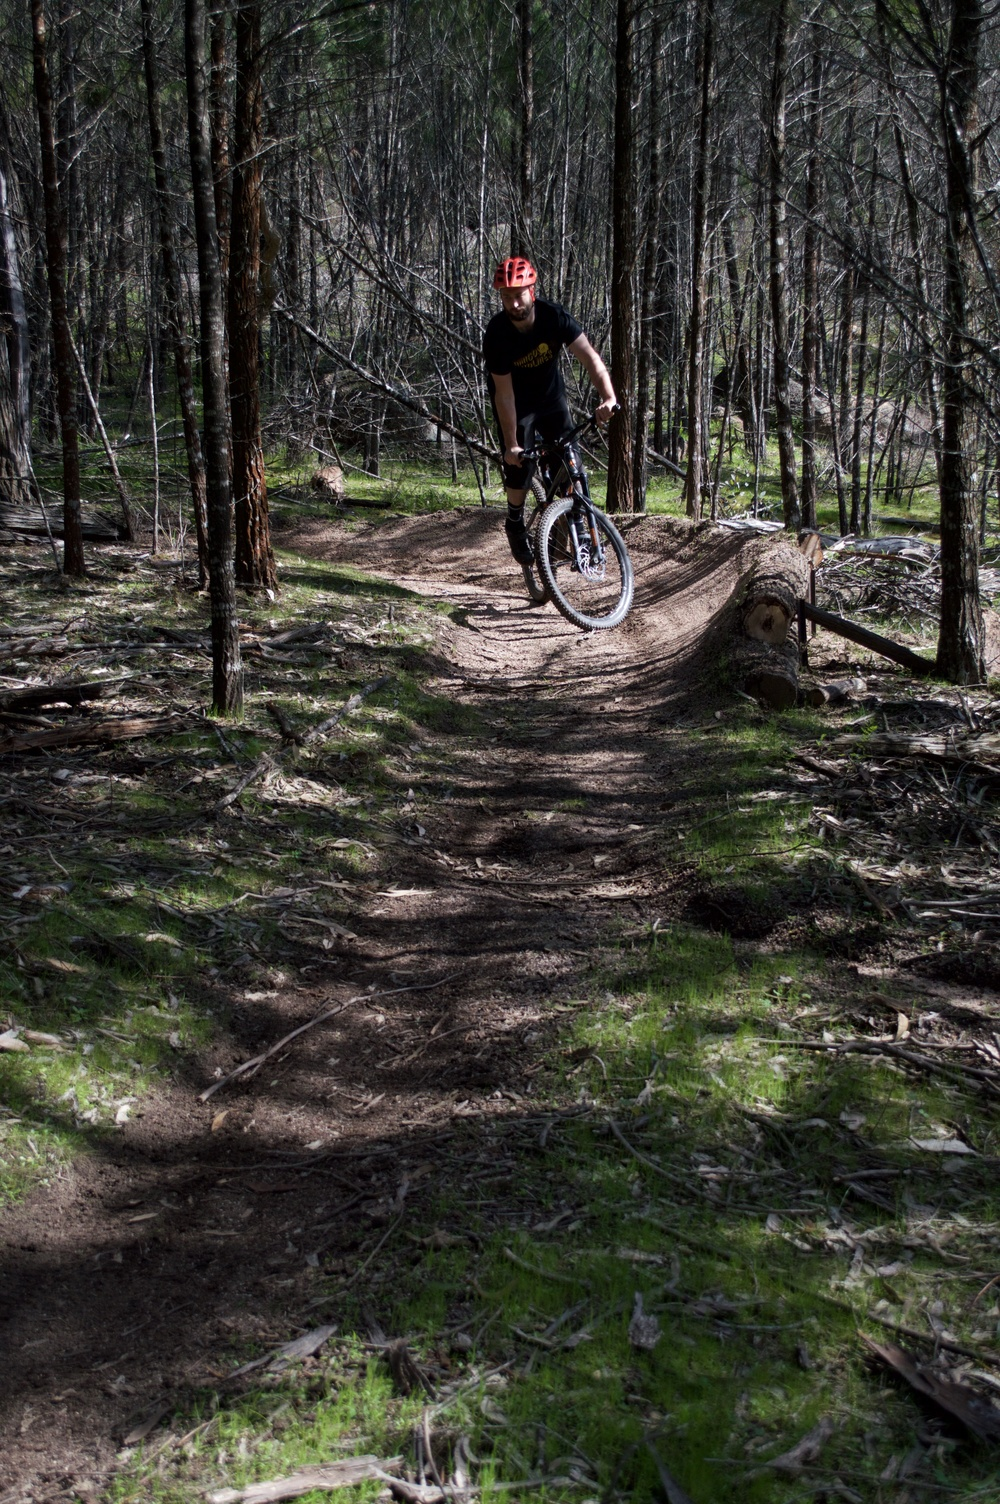 Stylish and practical - riding in the bottom of the berm with no pace at all. This is how you win Strava. Pic by Jimmy